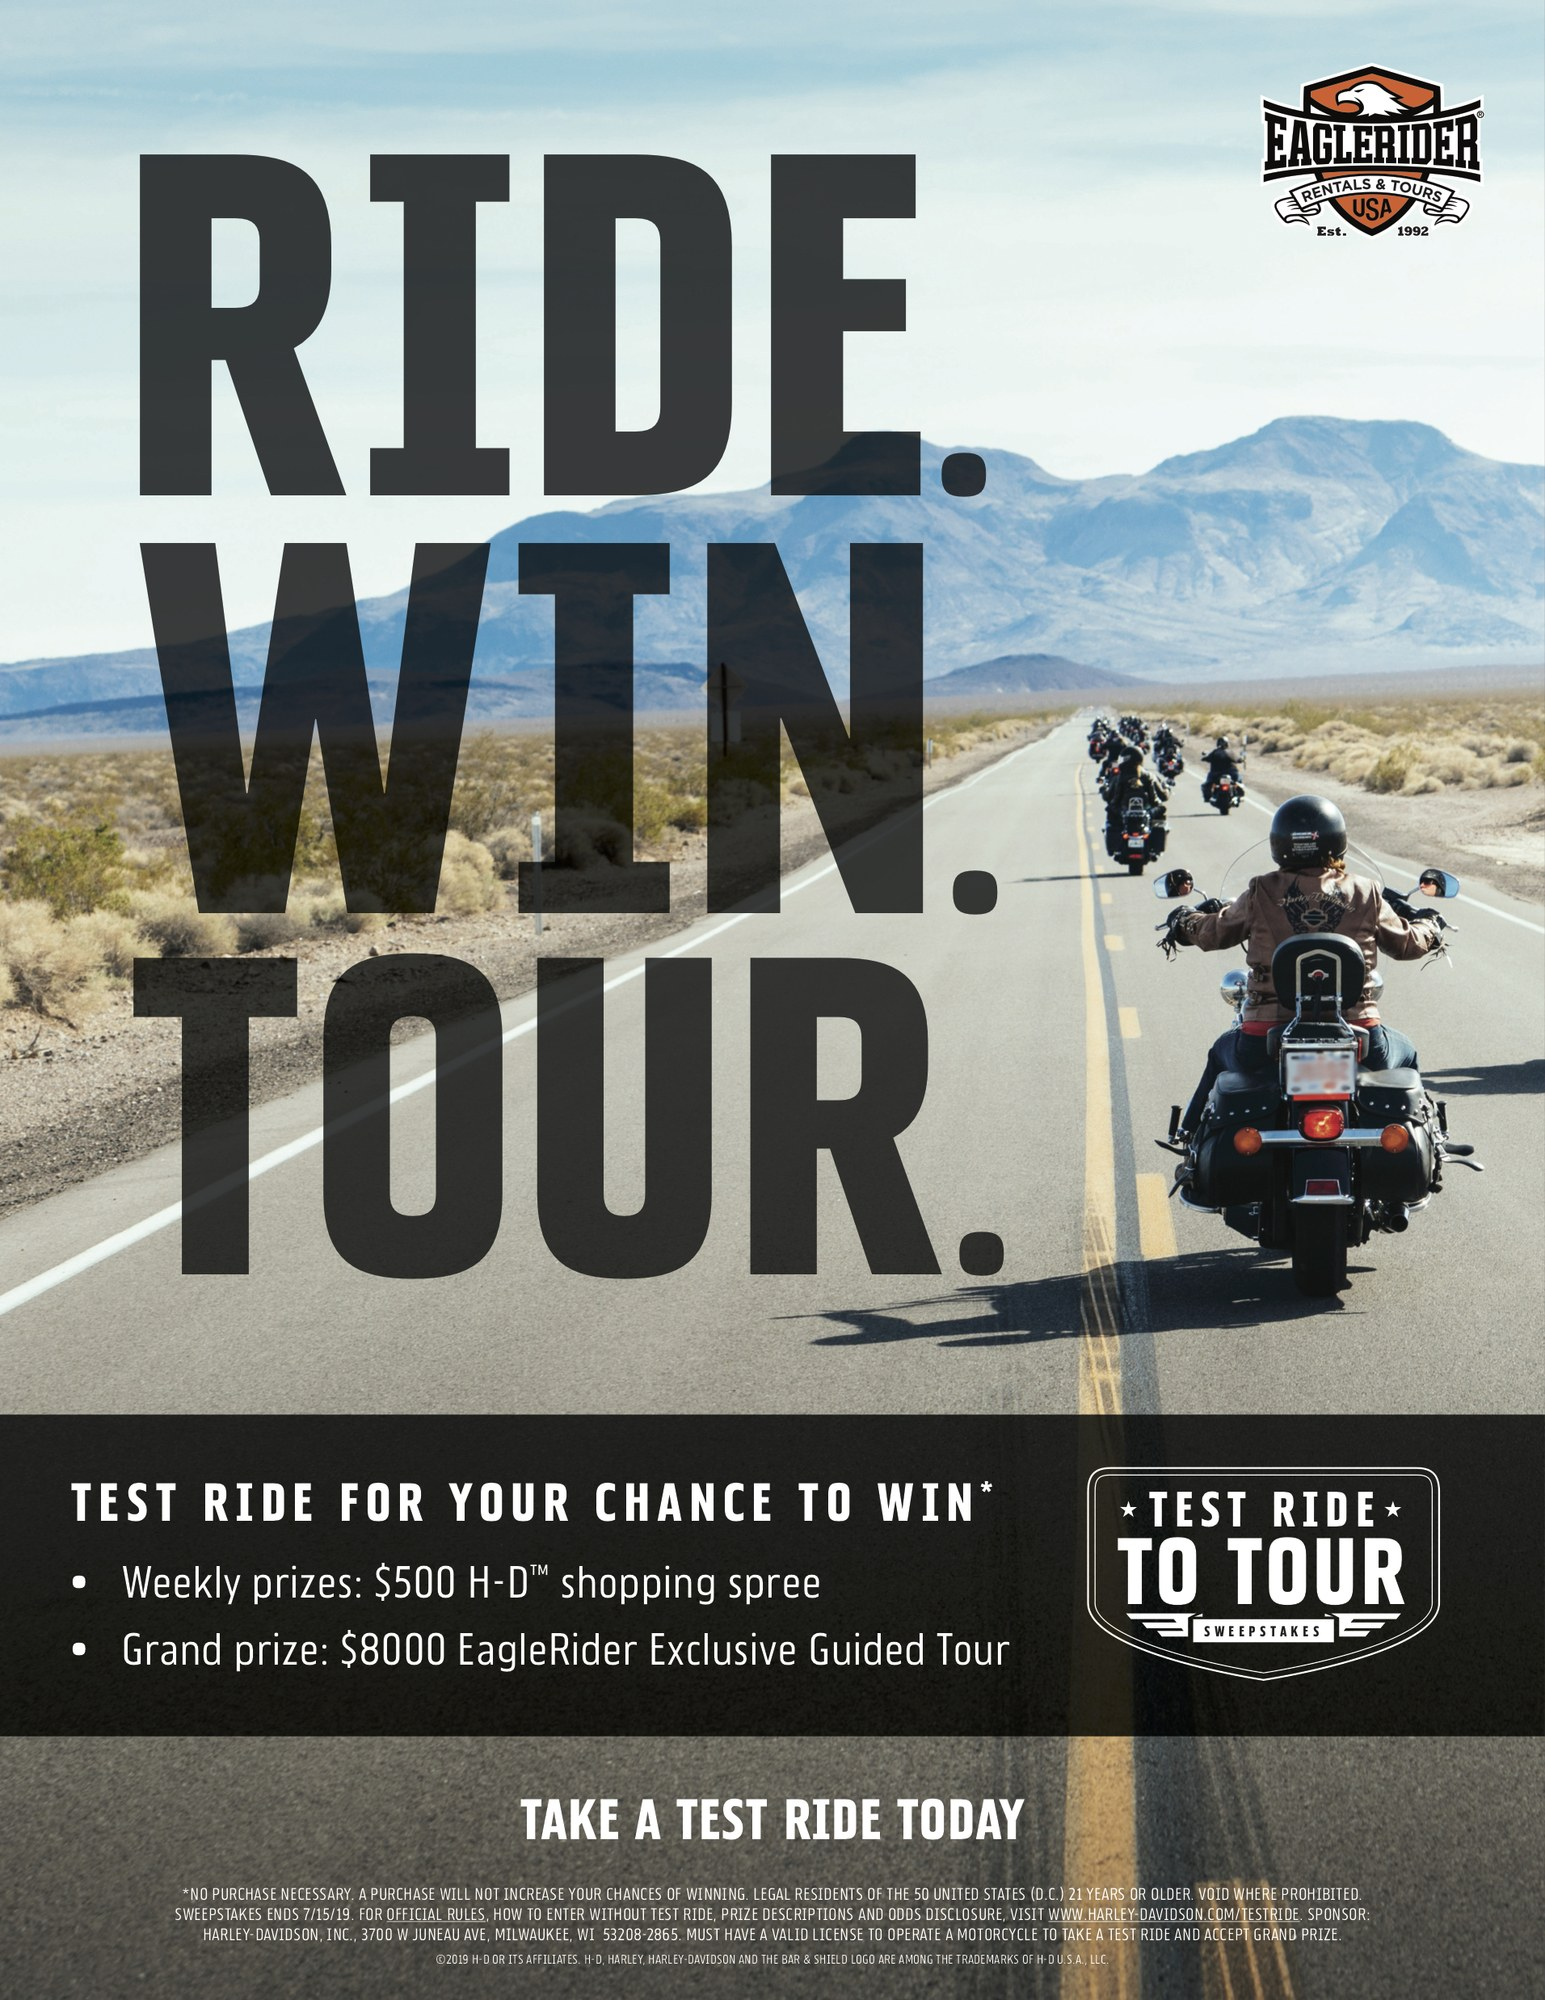 Test ride for your chance to win